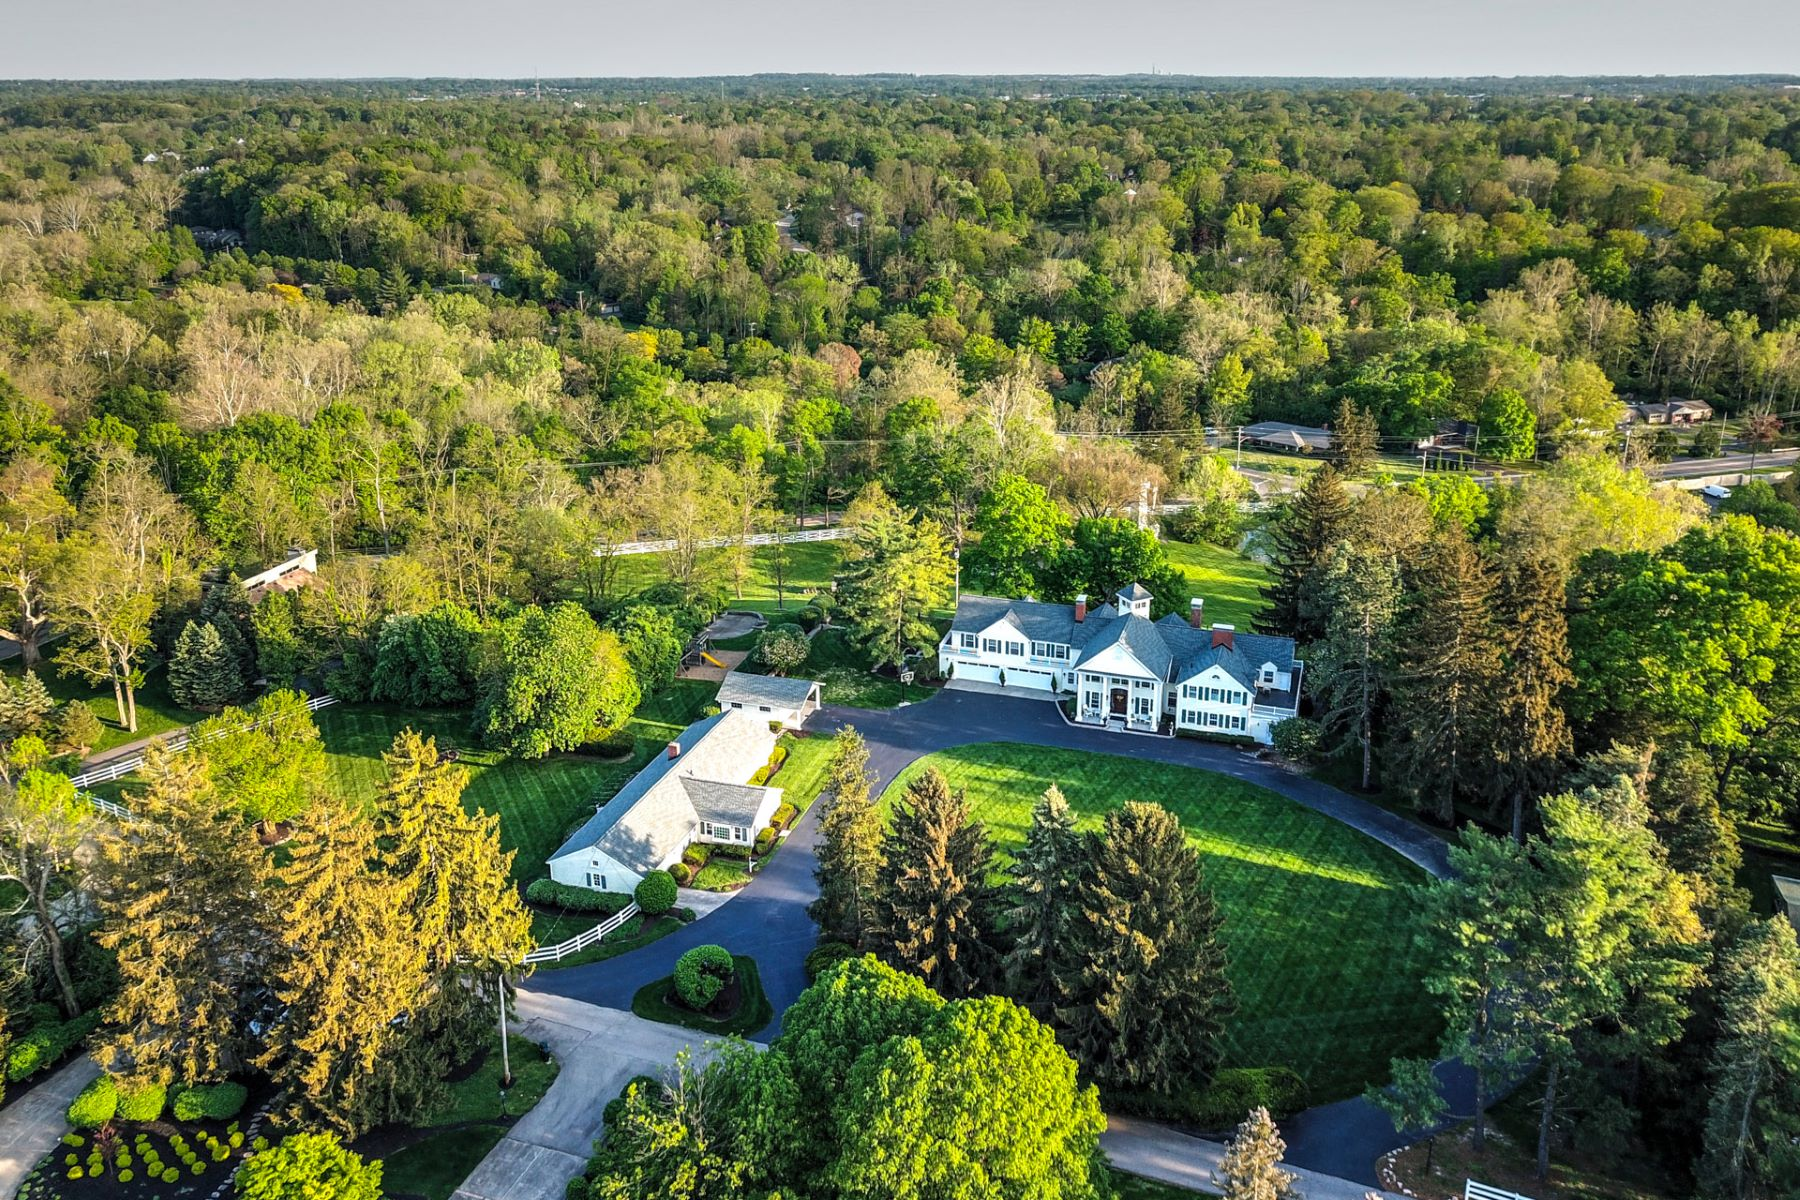 Single Family Homes für Verkauf beim Prestige Estate spread over 7 acres of meticulously groomed park-like grounds 1430 - 1440 Haven Hill Drive, Washington Township, Ohio 45459 Vereinigte Staaten